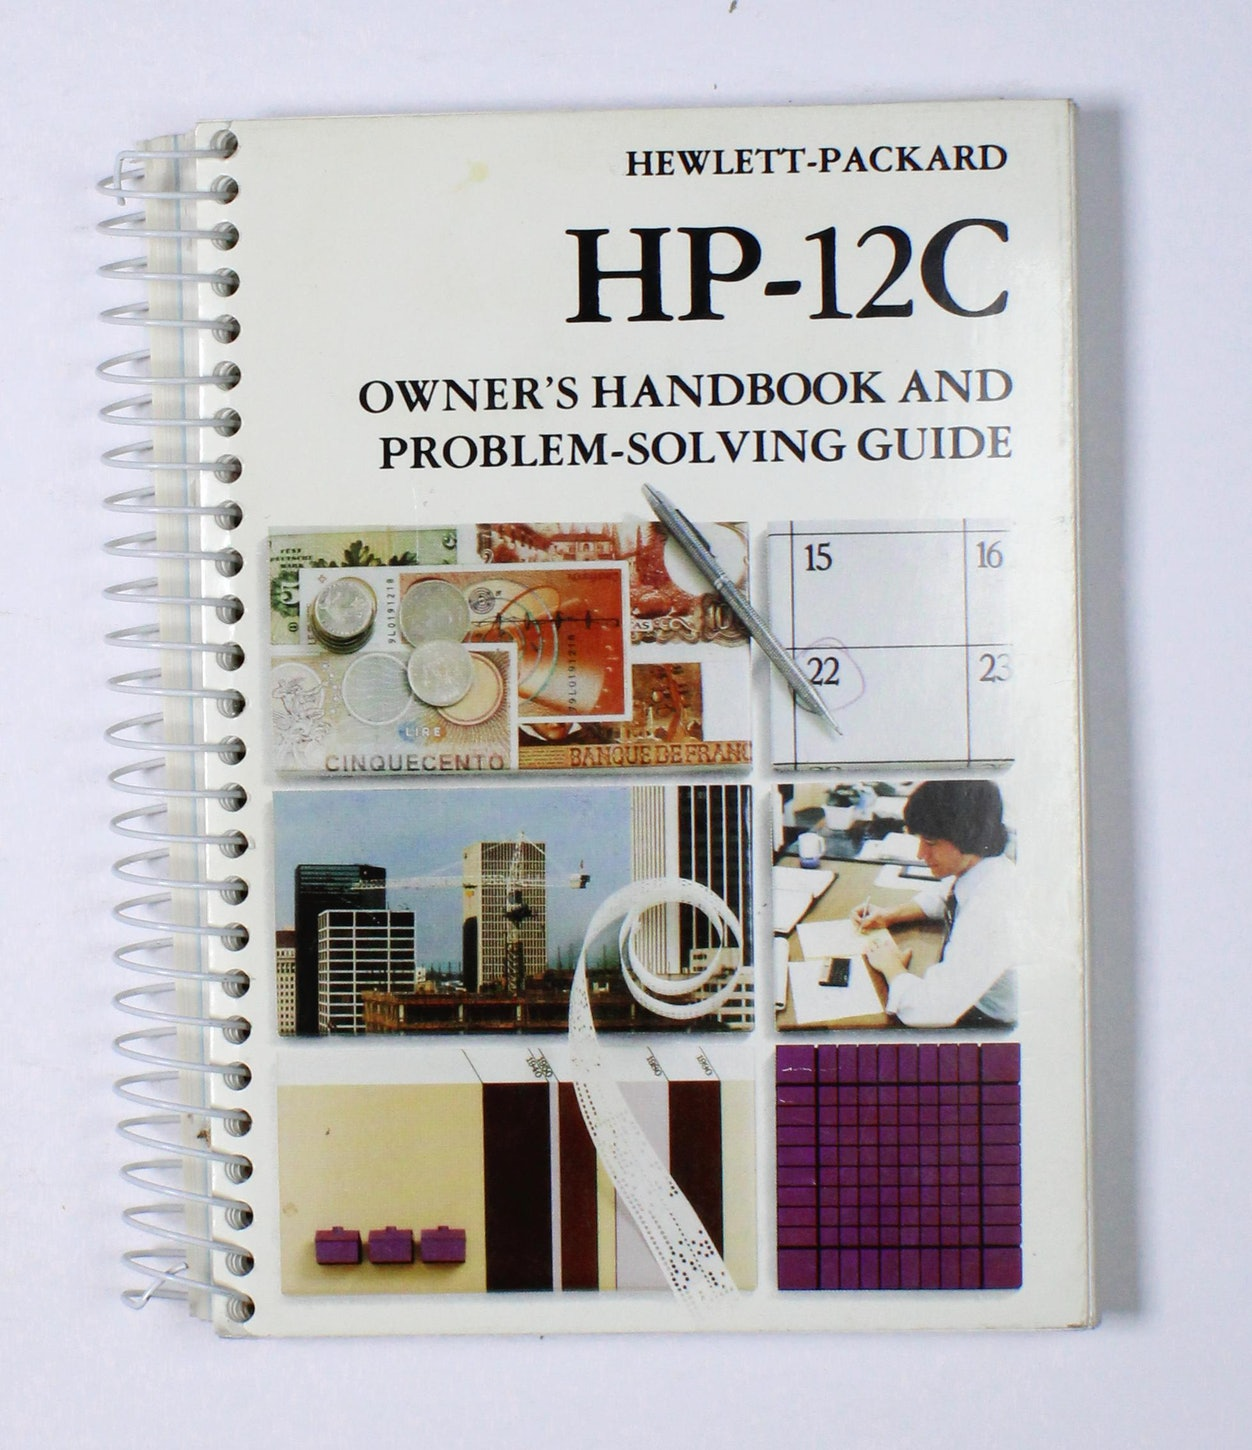 HP-12C Owner's Handbook and Problem Solving Guide